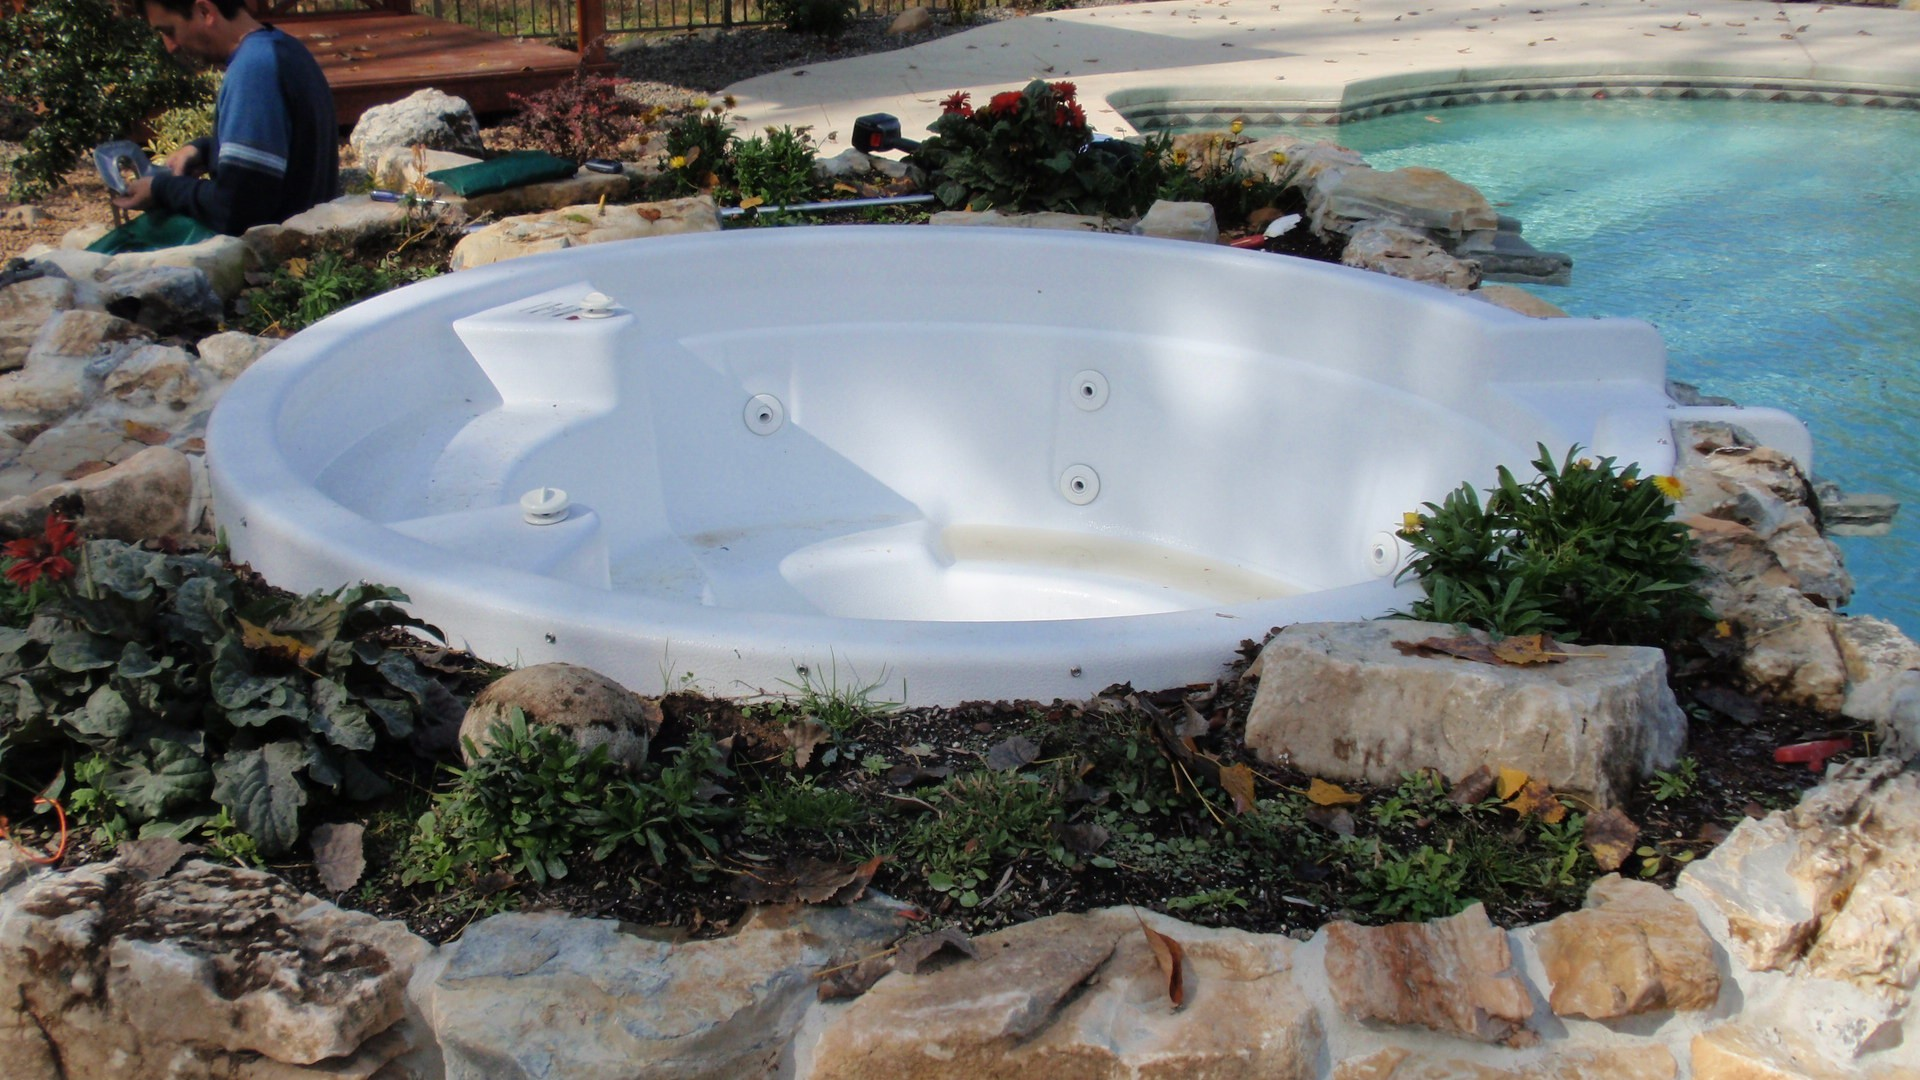 Jacuzzi Pool Covers Pool Covers And Pool Cover Repairs